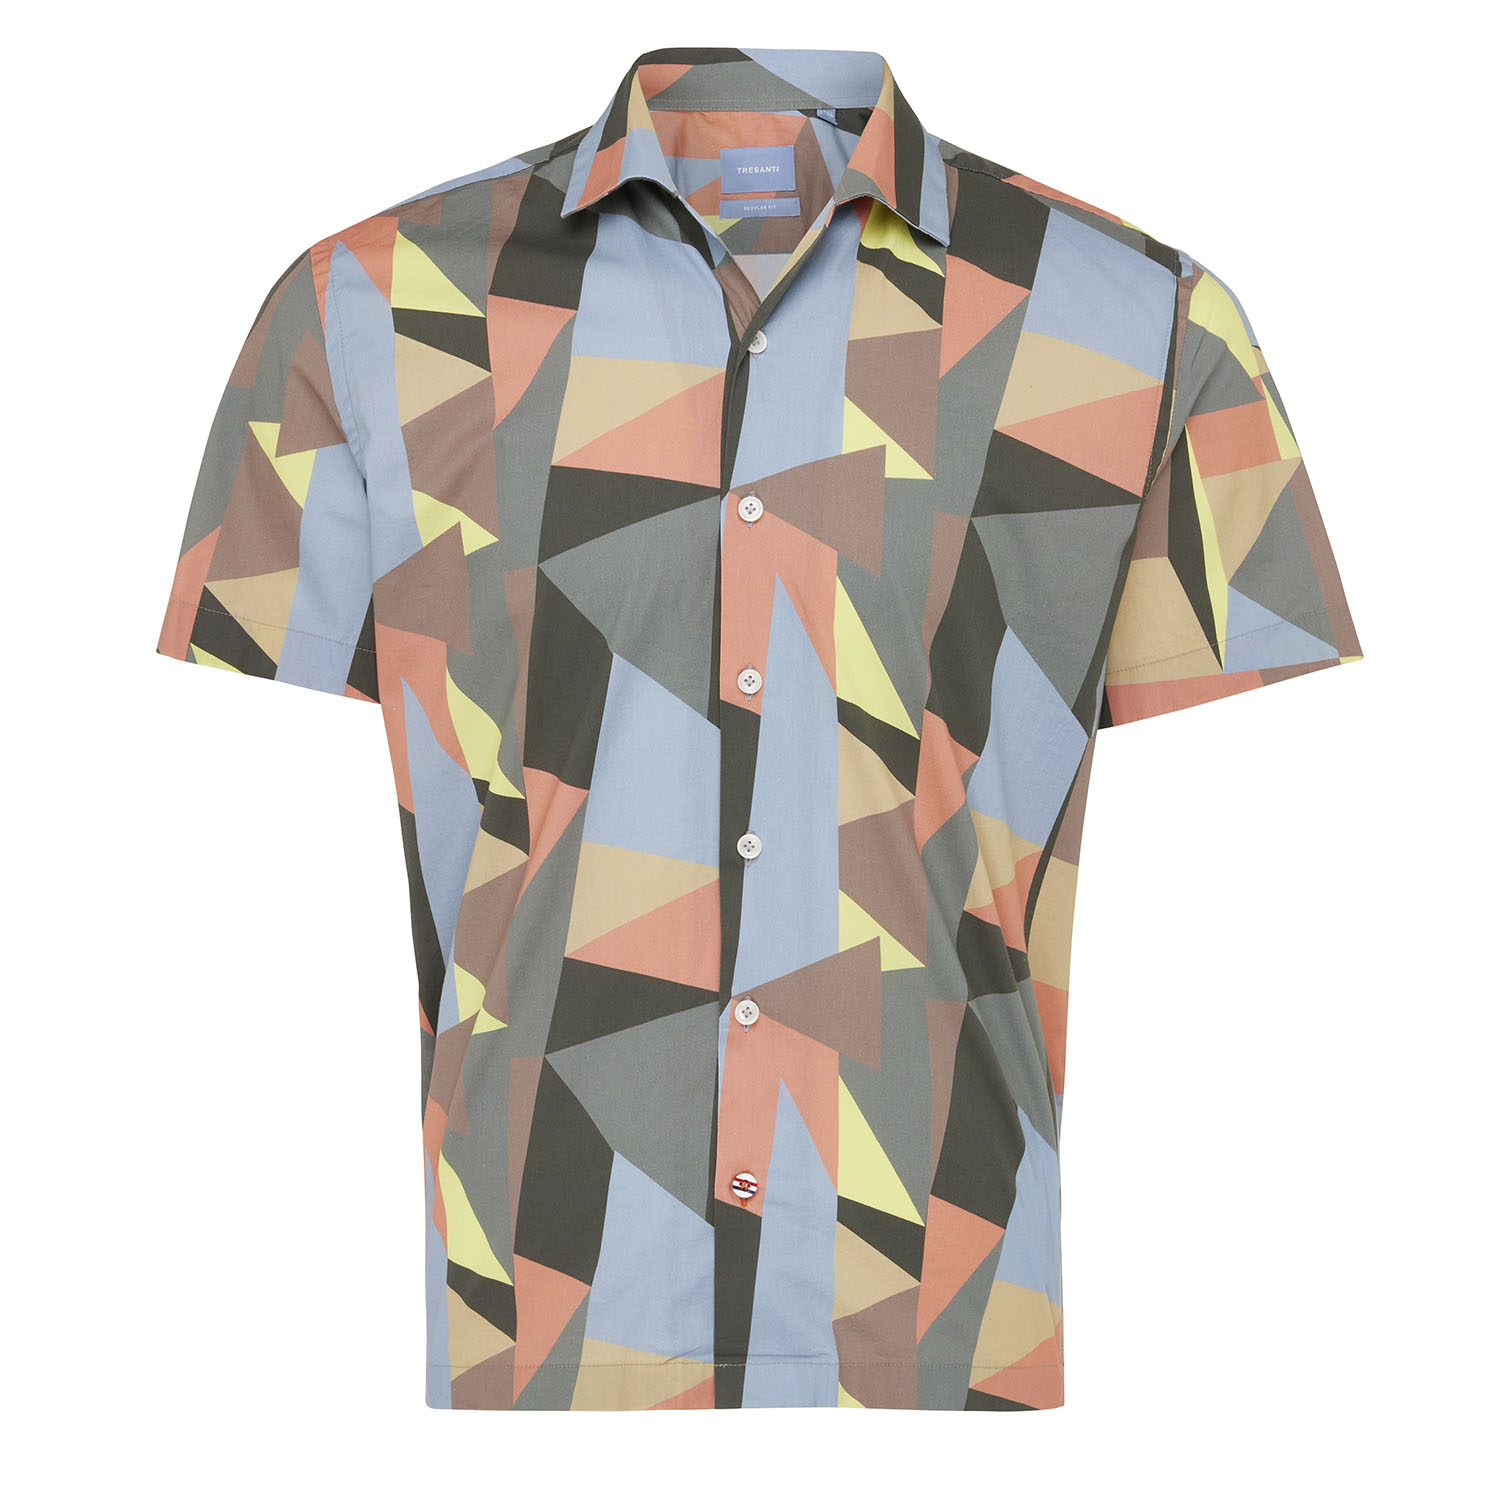 Max | Short sleeve shirt geo print multi